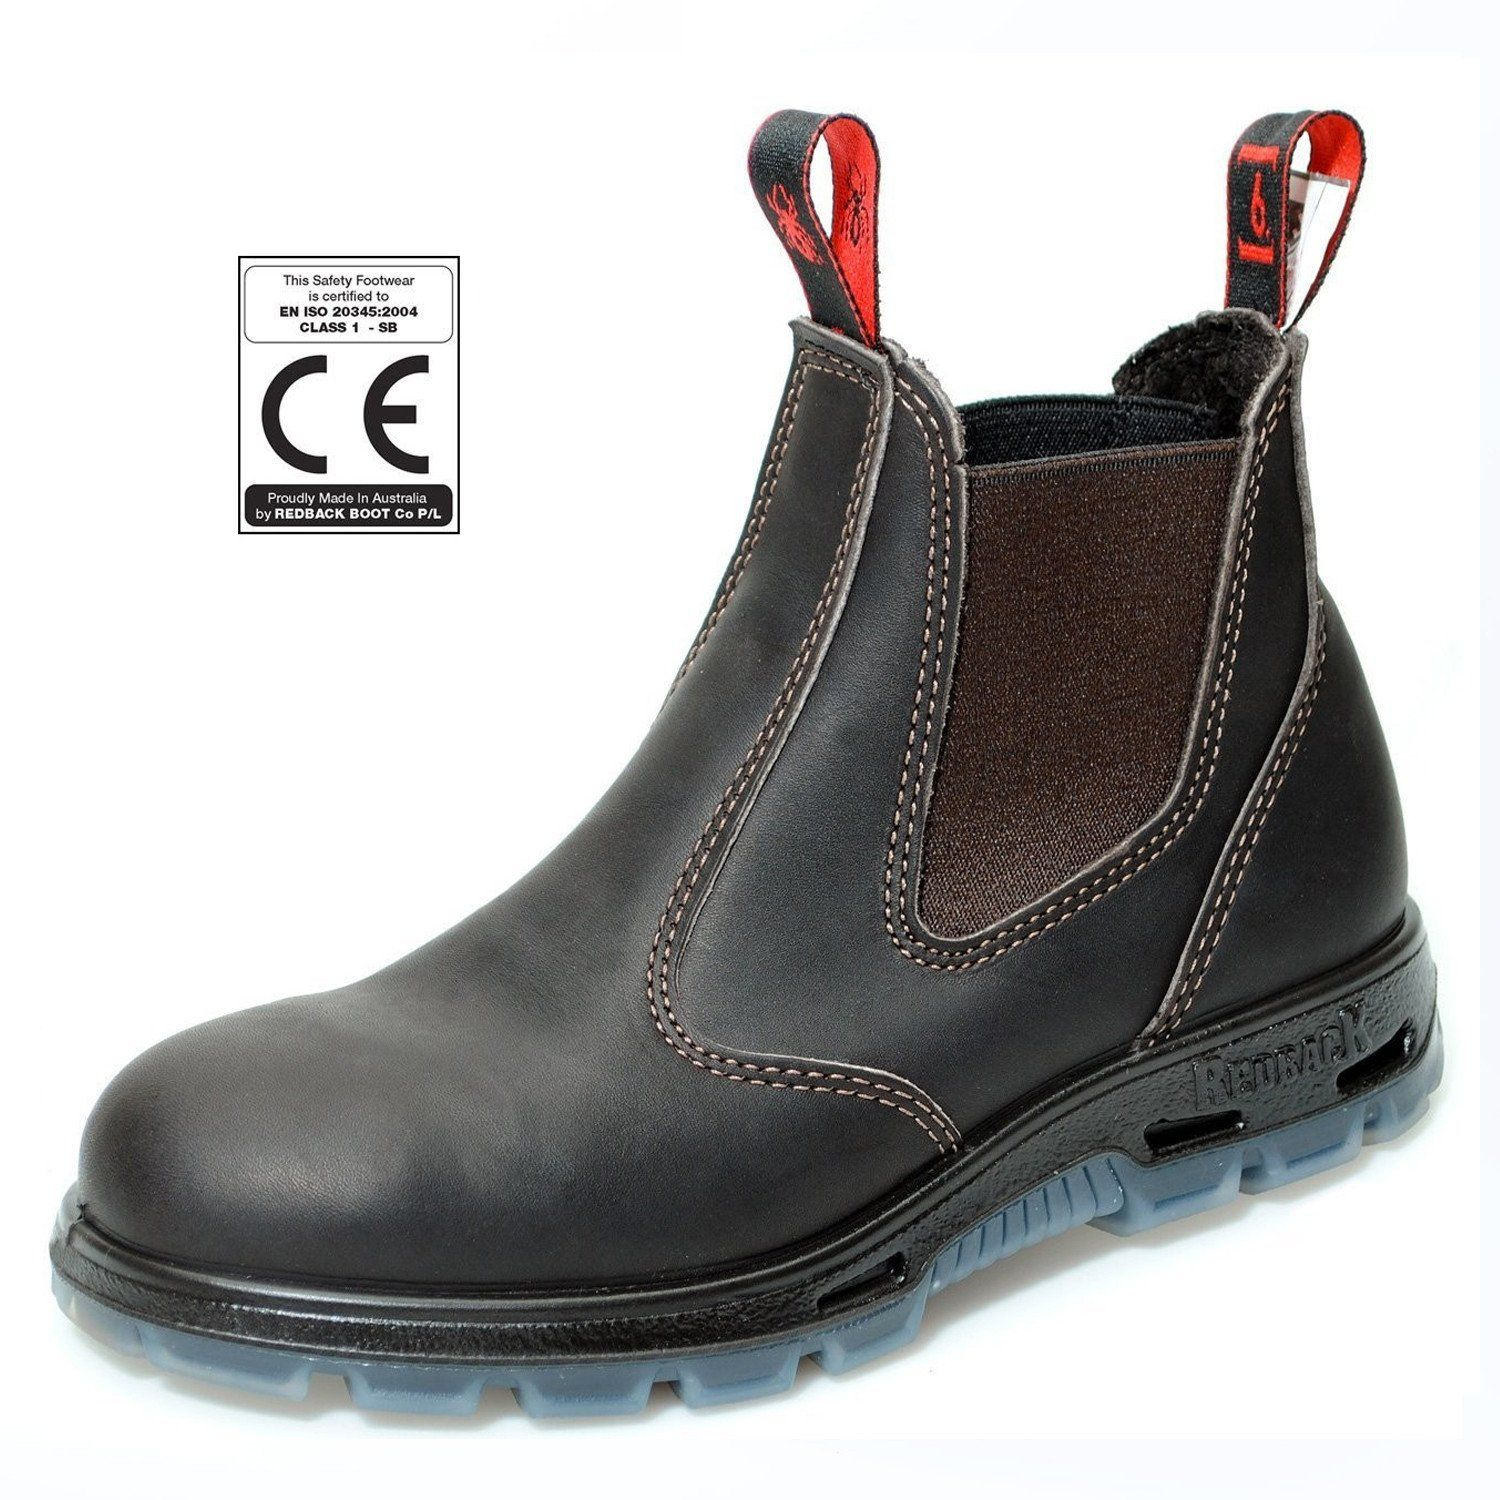 Things To Know About Redback Boots In 2020 Chelsea Boots Redback Boots Boots